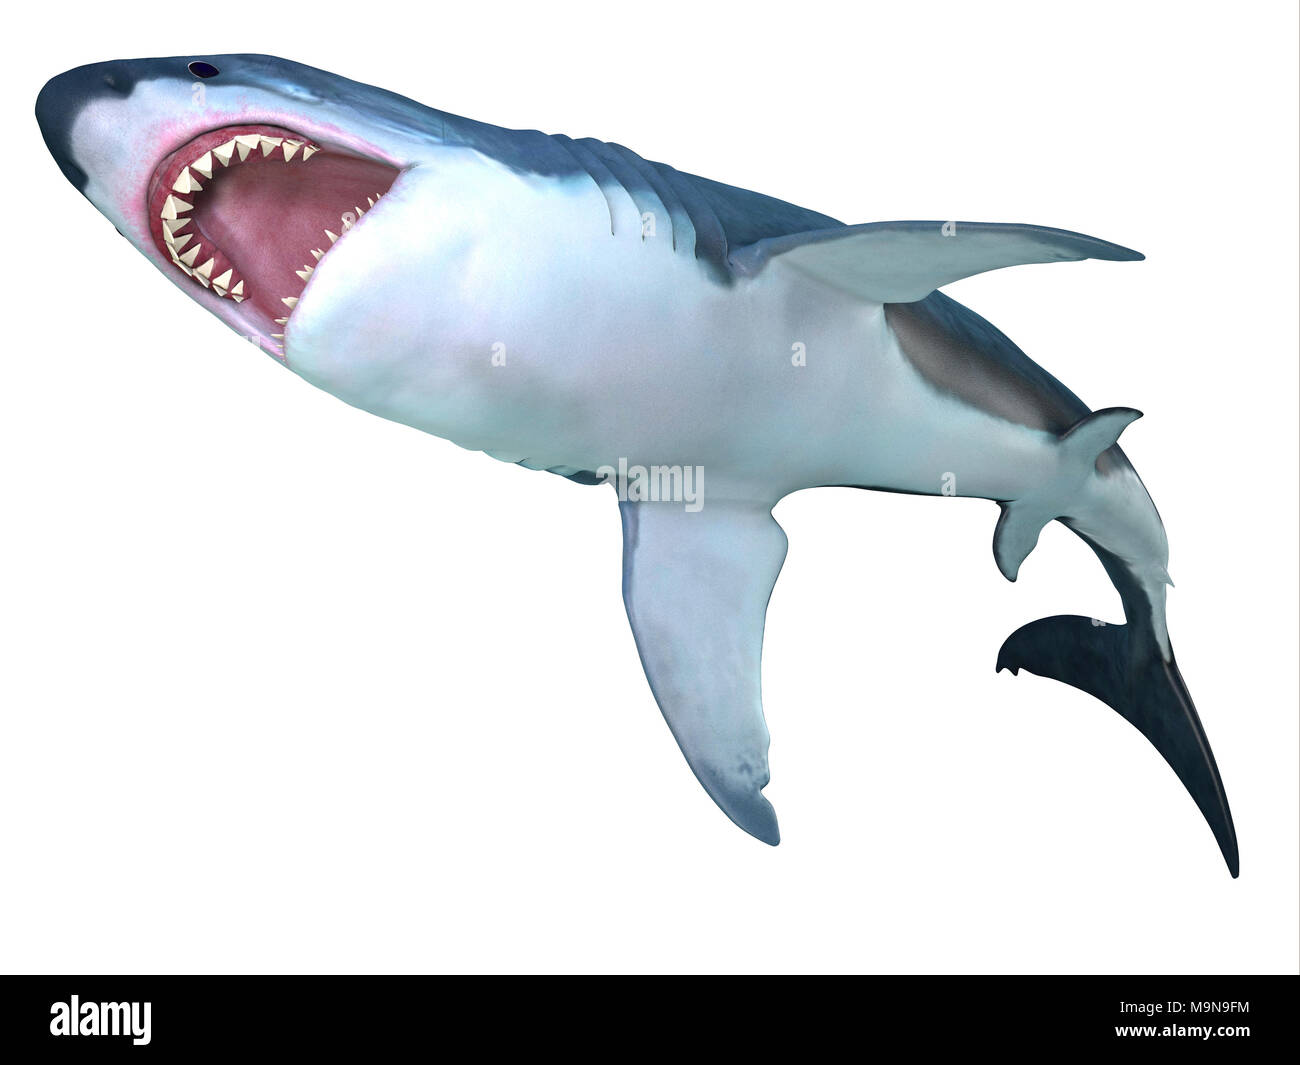 Megalodon Shark Underbelly - The prehistoric Megalodon shark could grow to be 82 feet in length and lived during the Miocene to the Pliocene Periods. - Stock Image